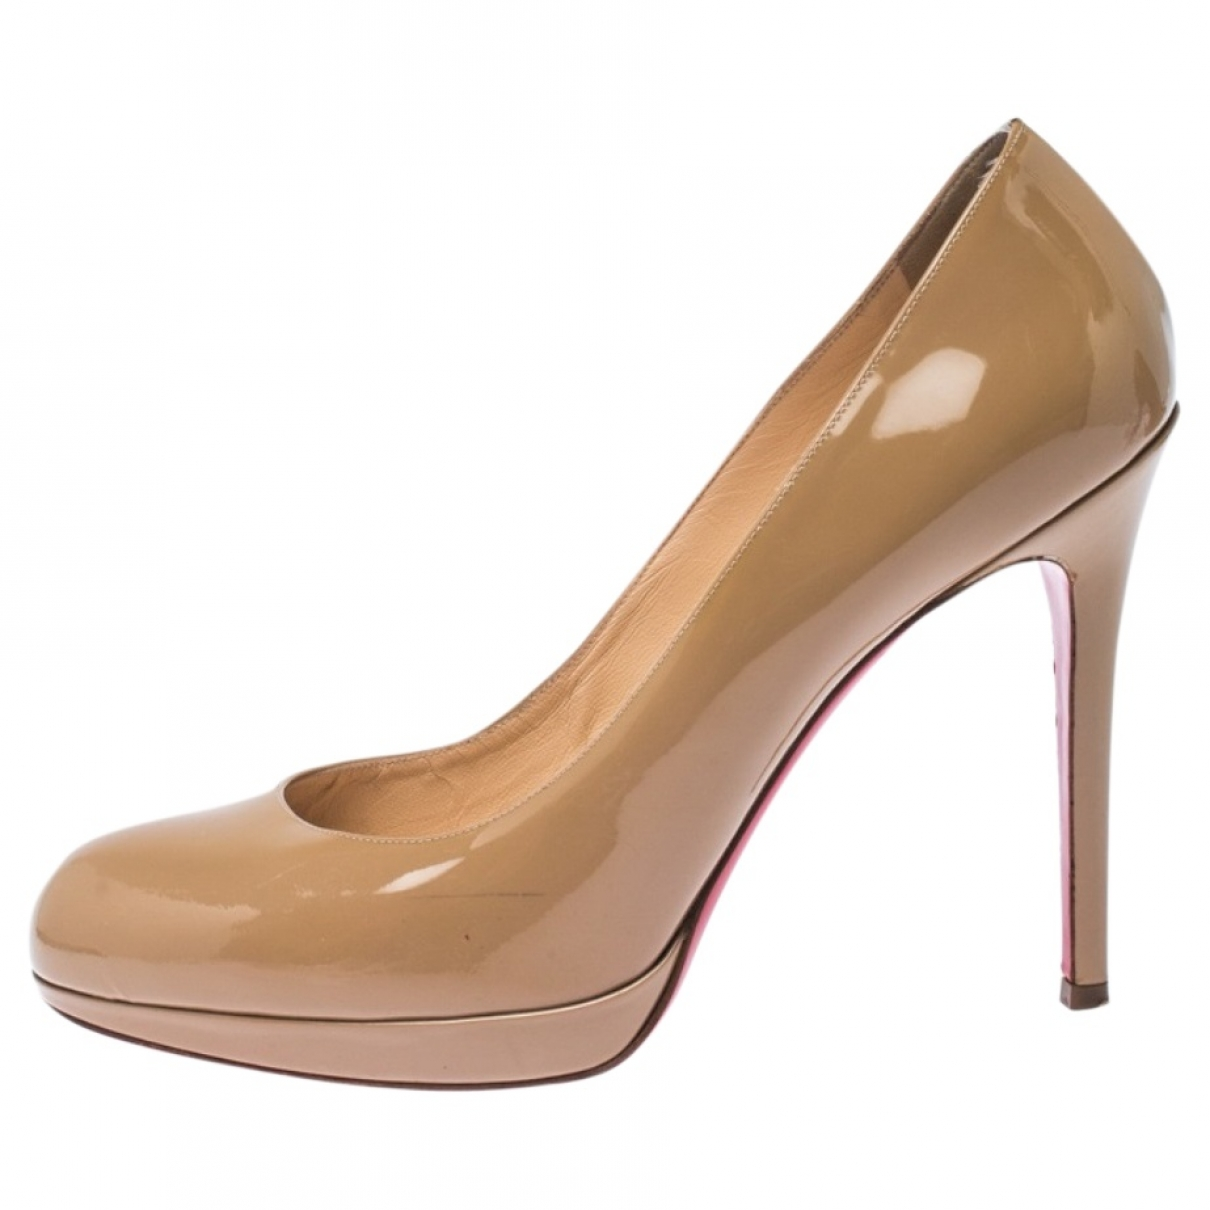 Christian Louboutin Bianca Beige Patent leather Heels for Women 40 EU